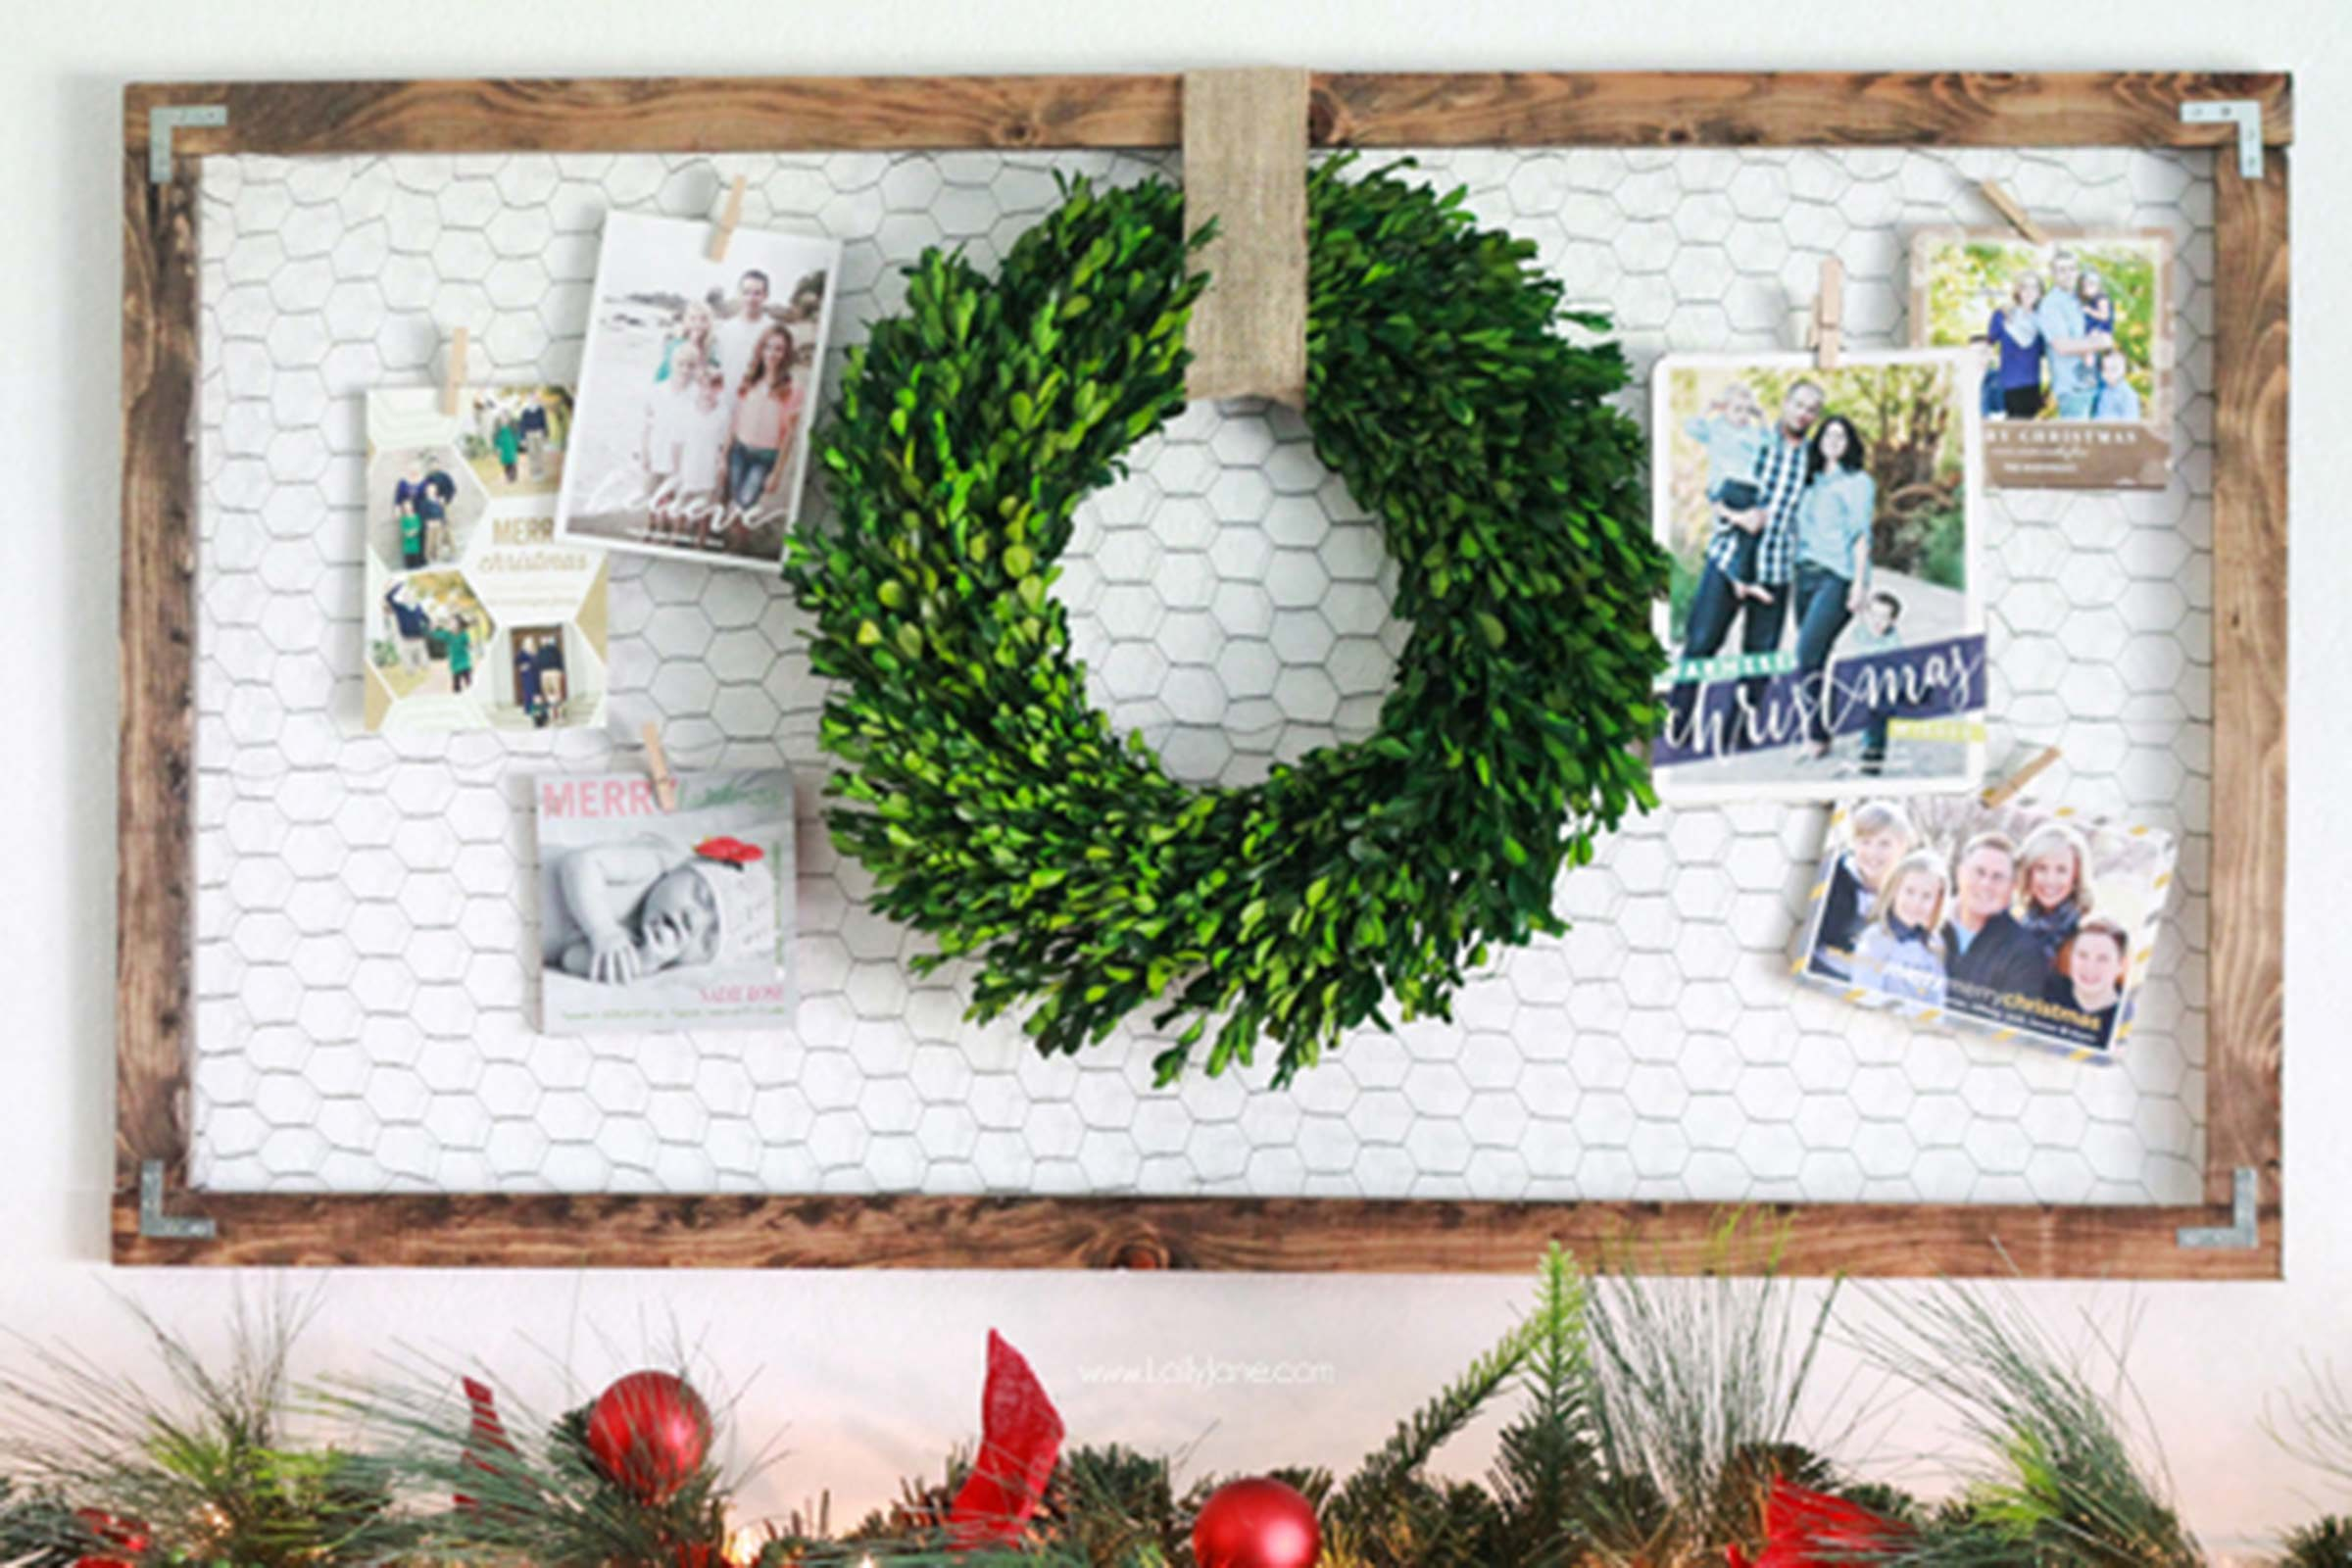 What To Do With Christmas Cards: Creative Displays